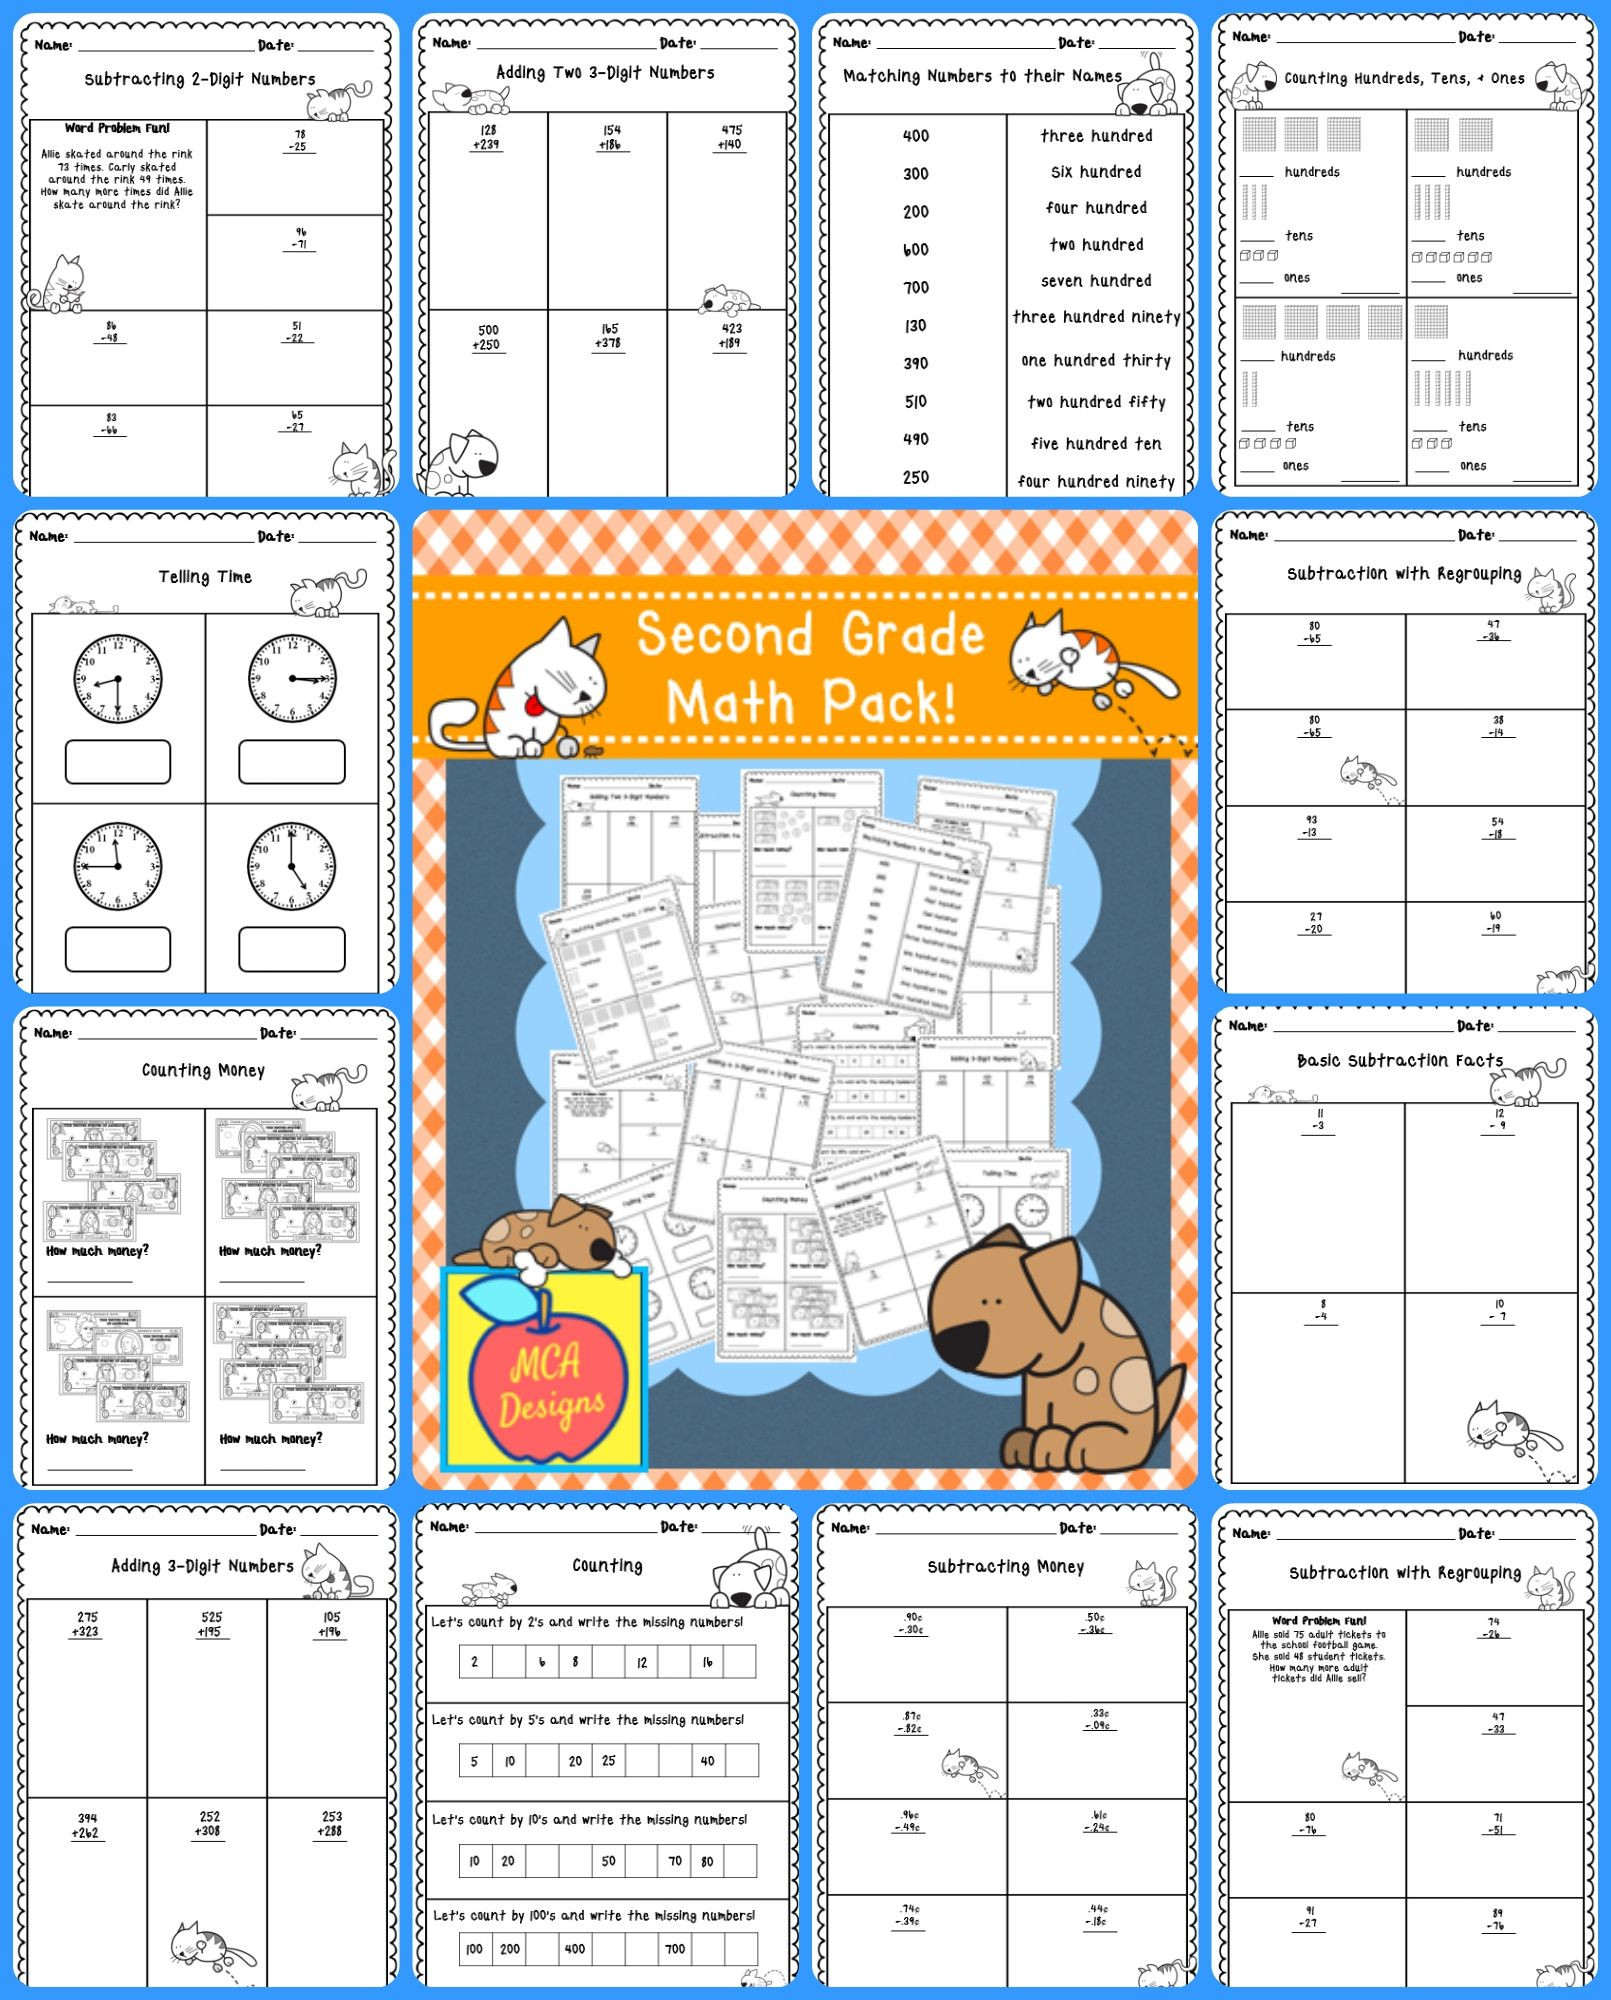 Bubble Gum Math Worksheets Second Grade Math Pack with Images